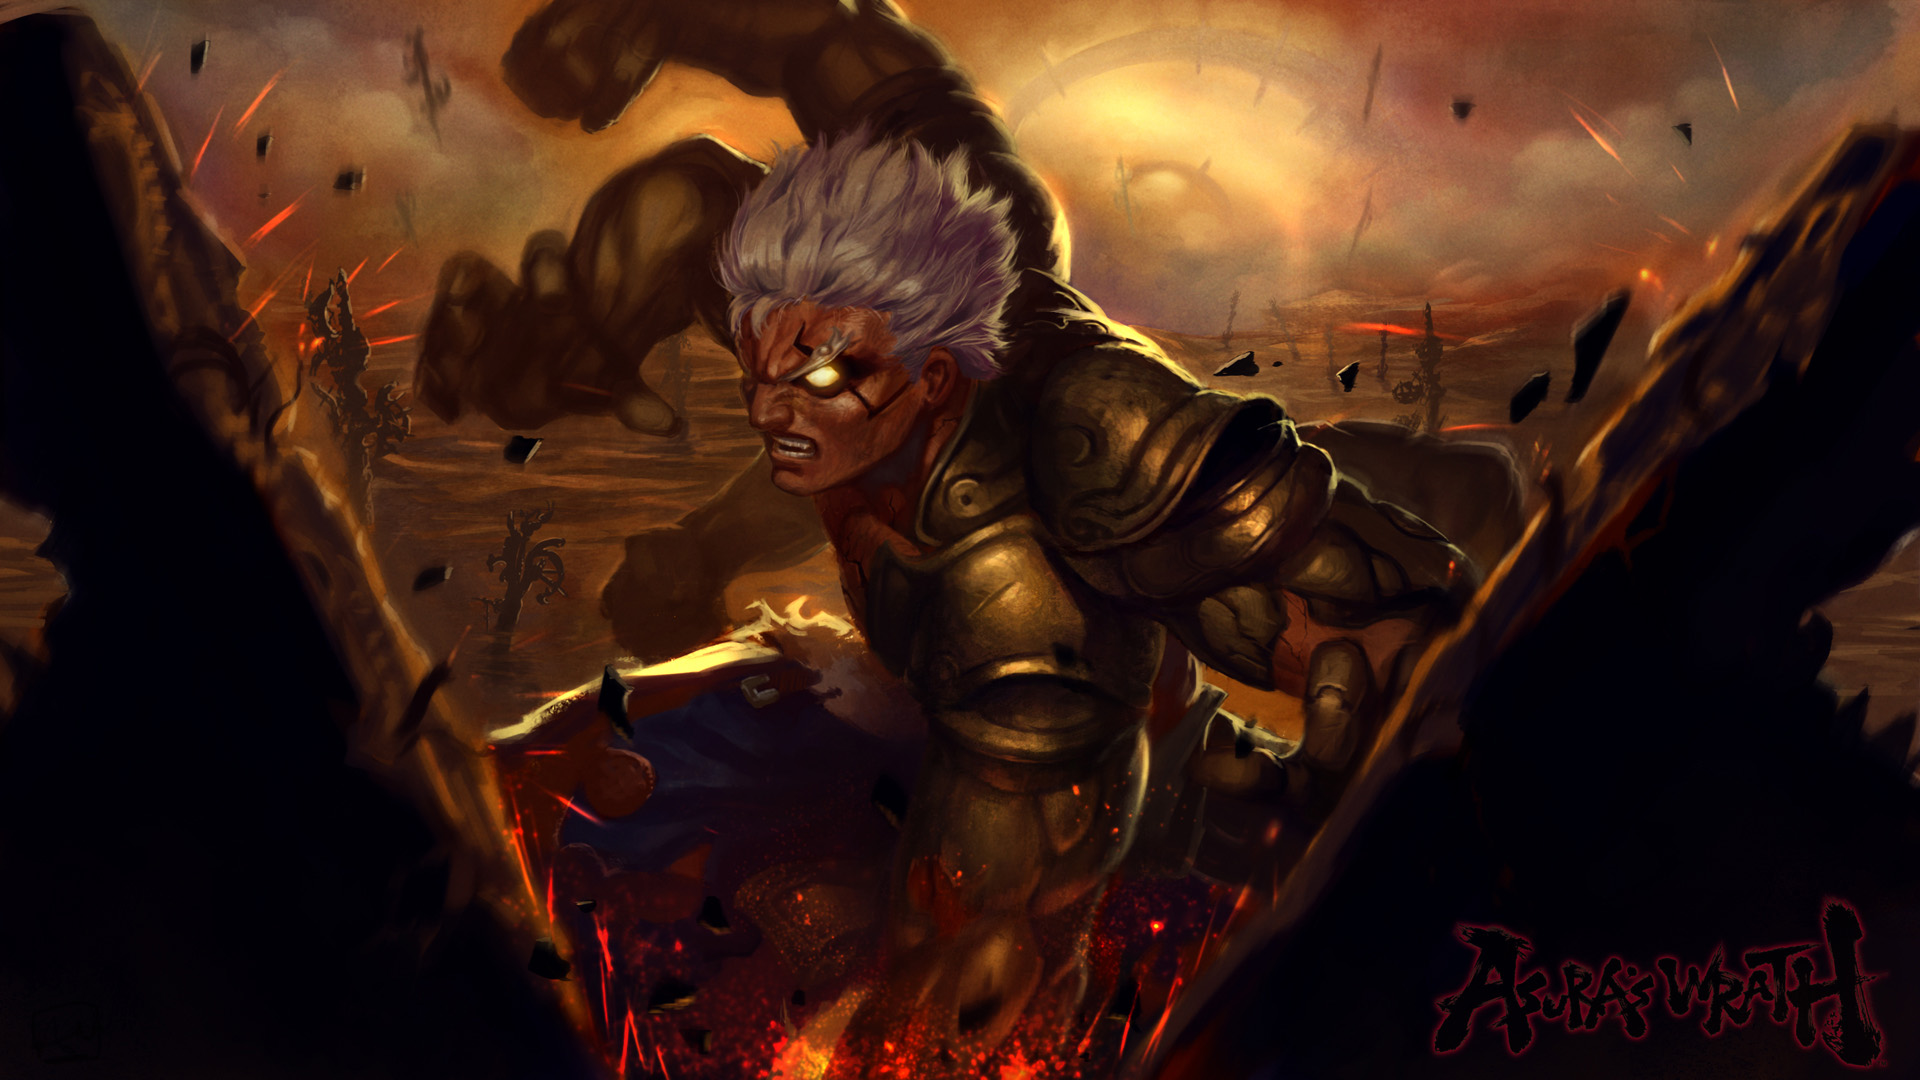 Asuras Wrath HD Wallpapers and Background Images   stmednet 1920x1080